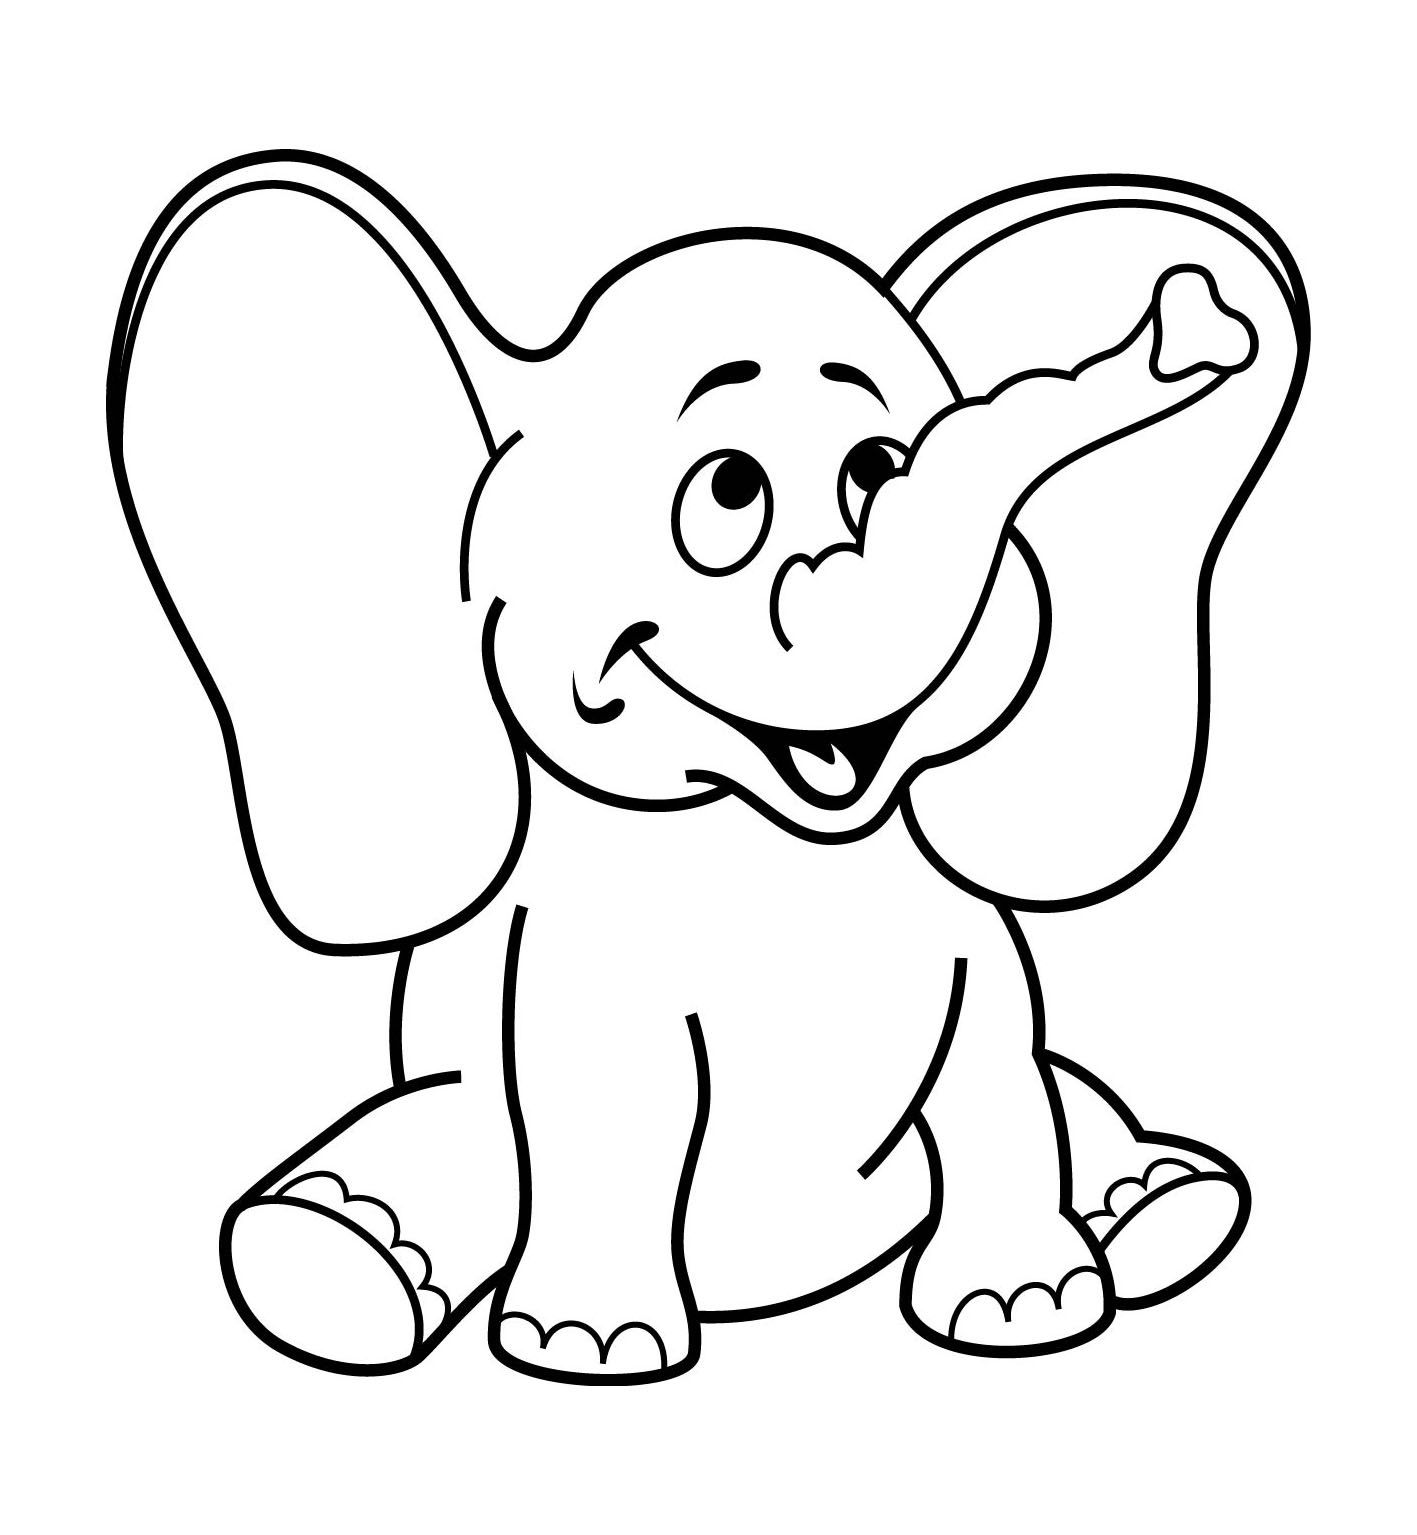 Coloring Pages For 3 Year Olds   Colorings   Crafts For 3